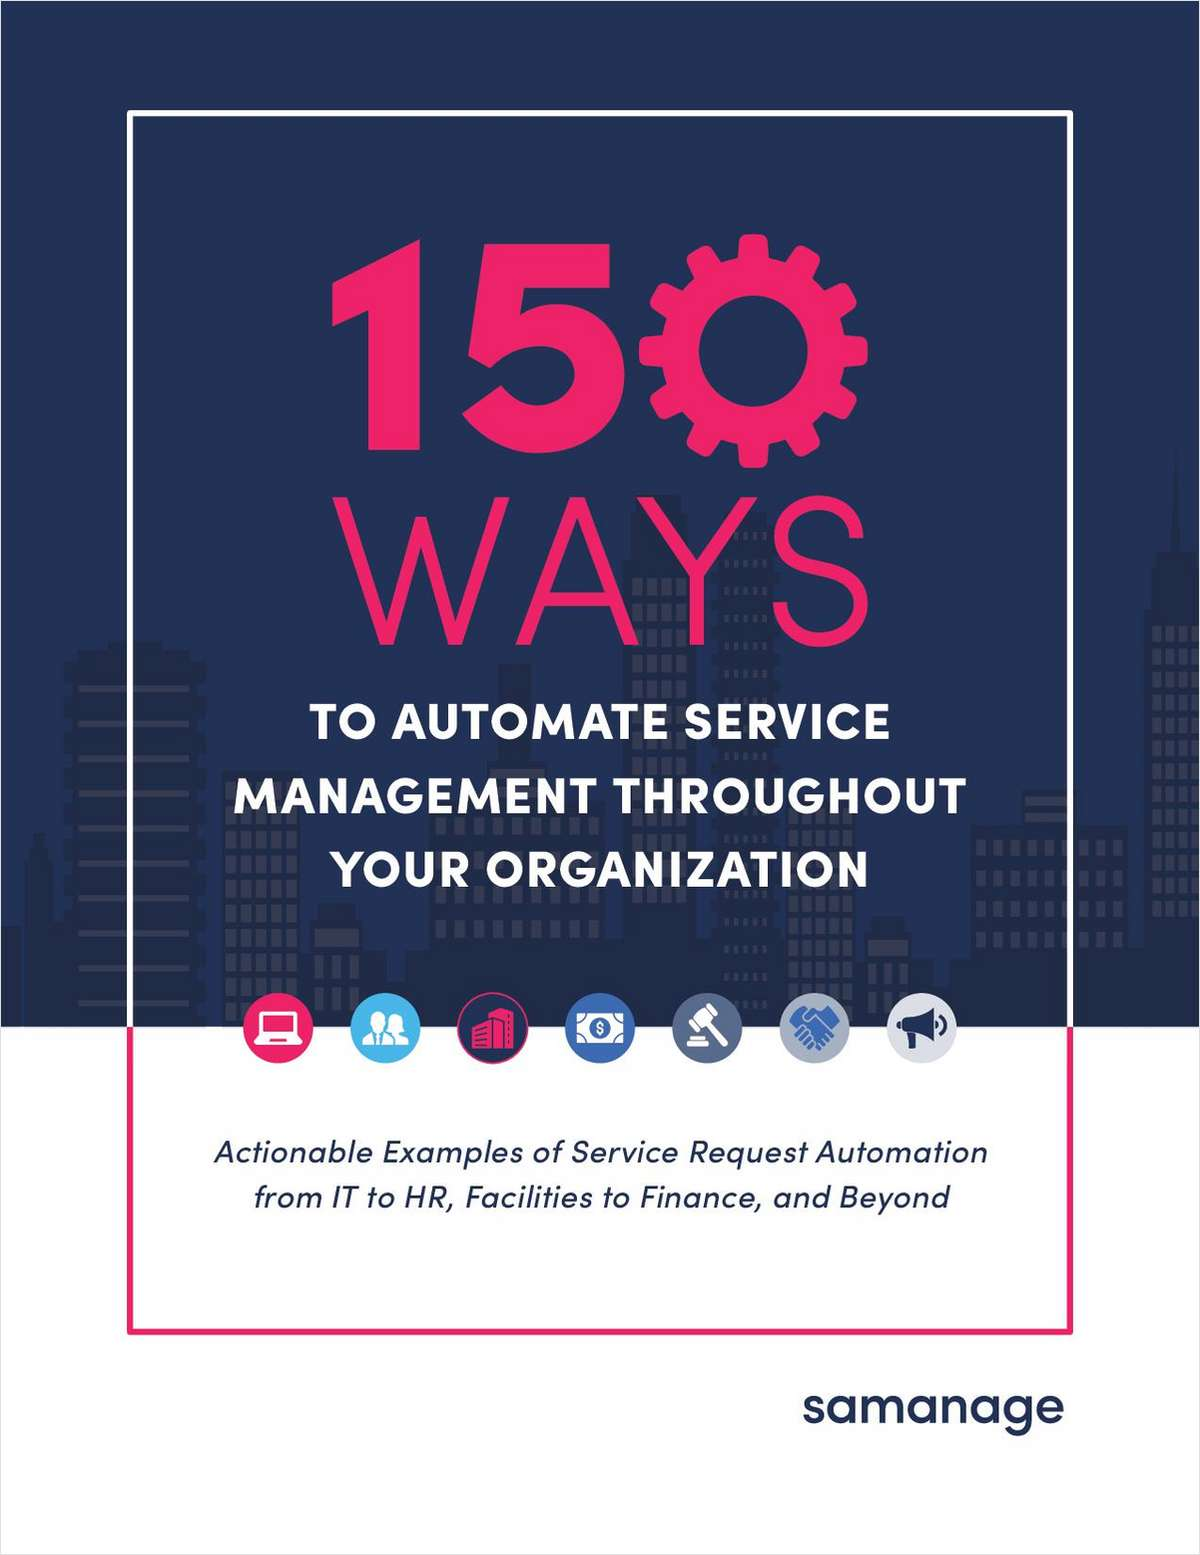 150 Ways to Automate Service Management Throughout Your Organization